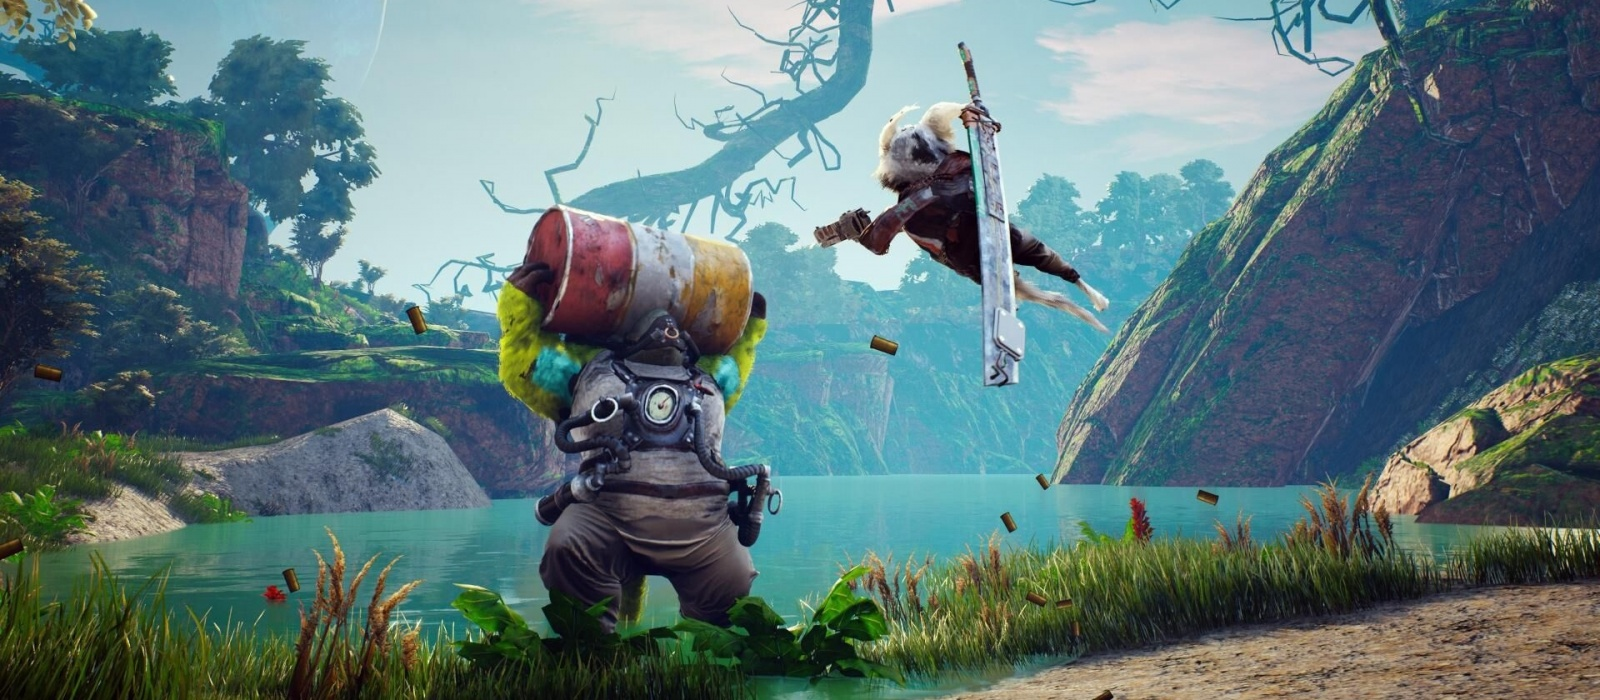 Where to find all the supporting characters in Biomutant